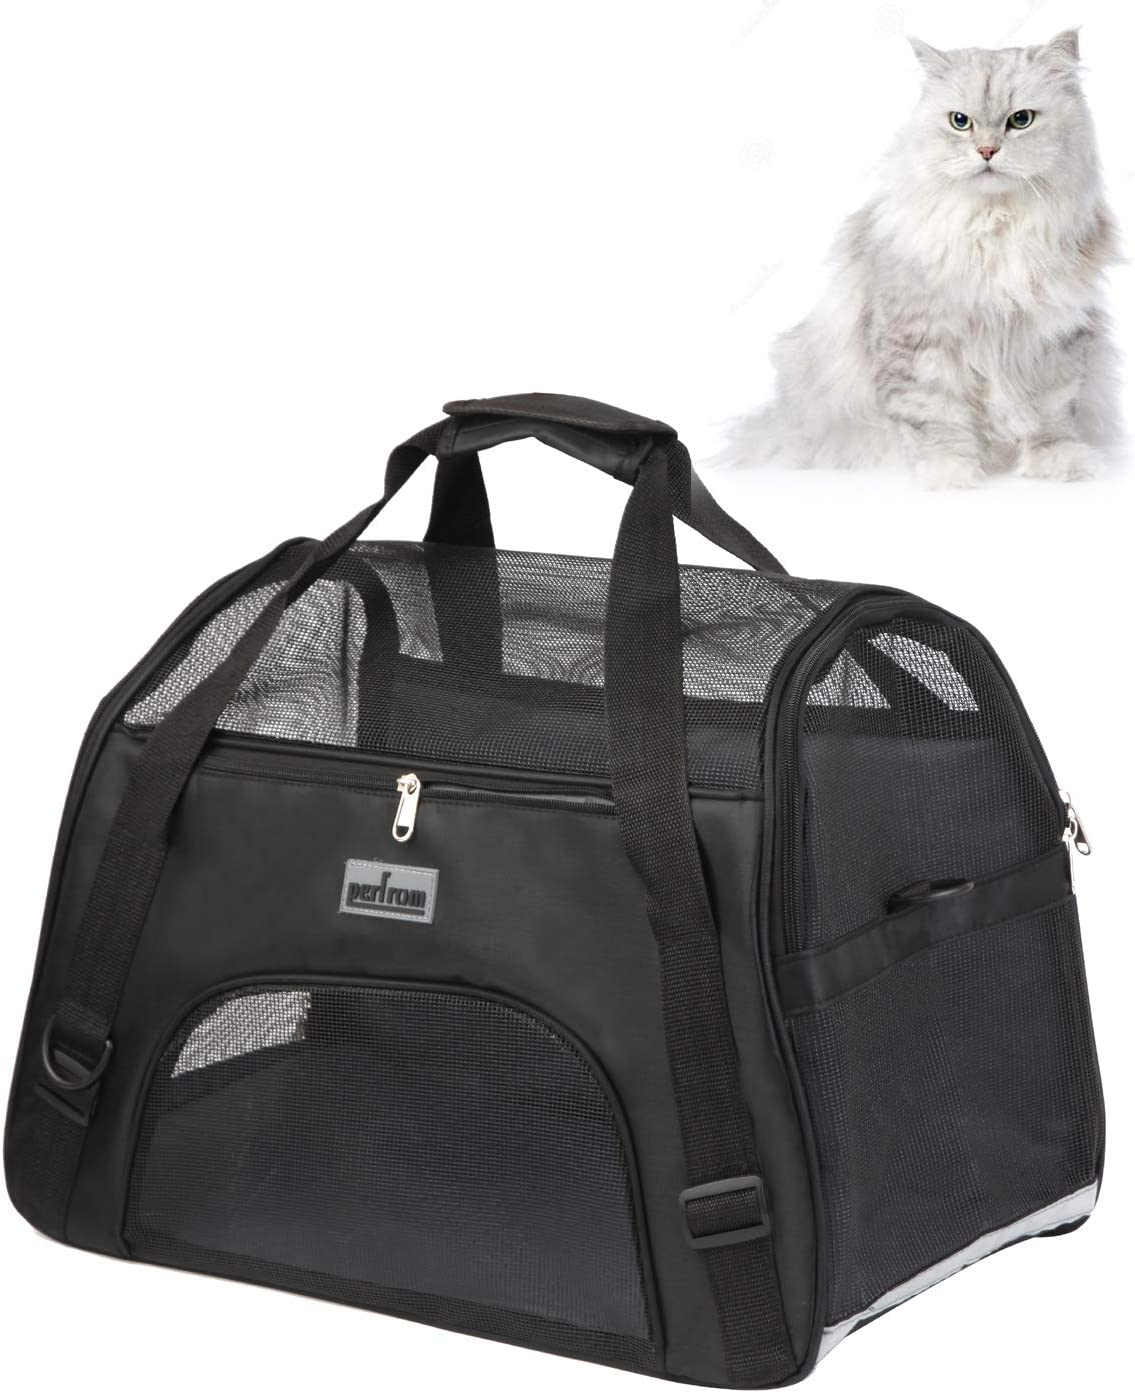 Breathable 4-Windows Design Black perfrom 20.5 x 9.7 x 13 Pet Carrier Soft Cat Carrier Airline Approved Soft Side Pet Carrier for Cats Small Dogs Travel Carrying Handbag